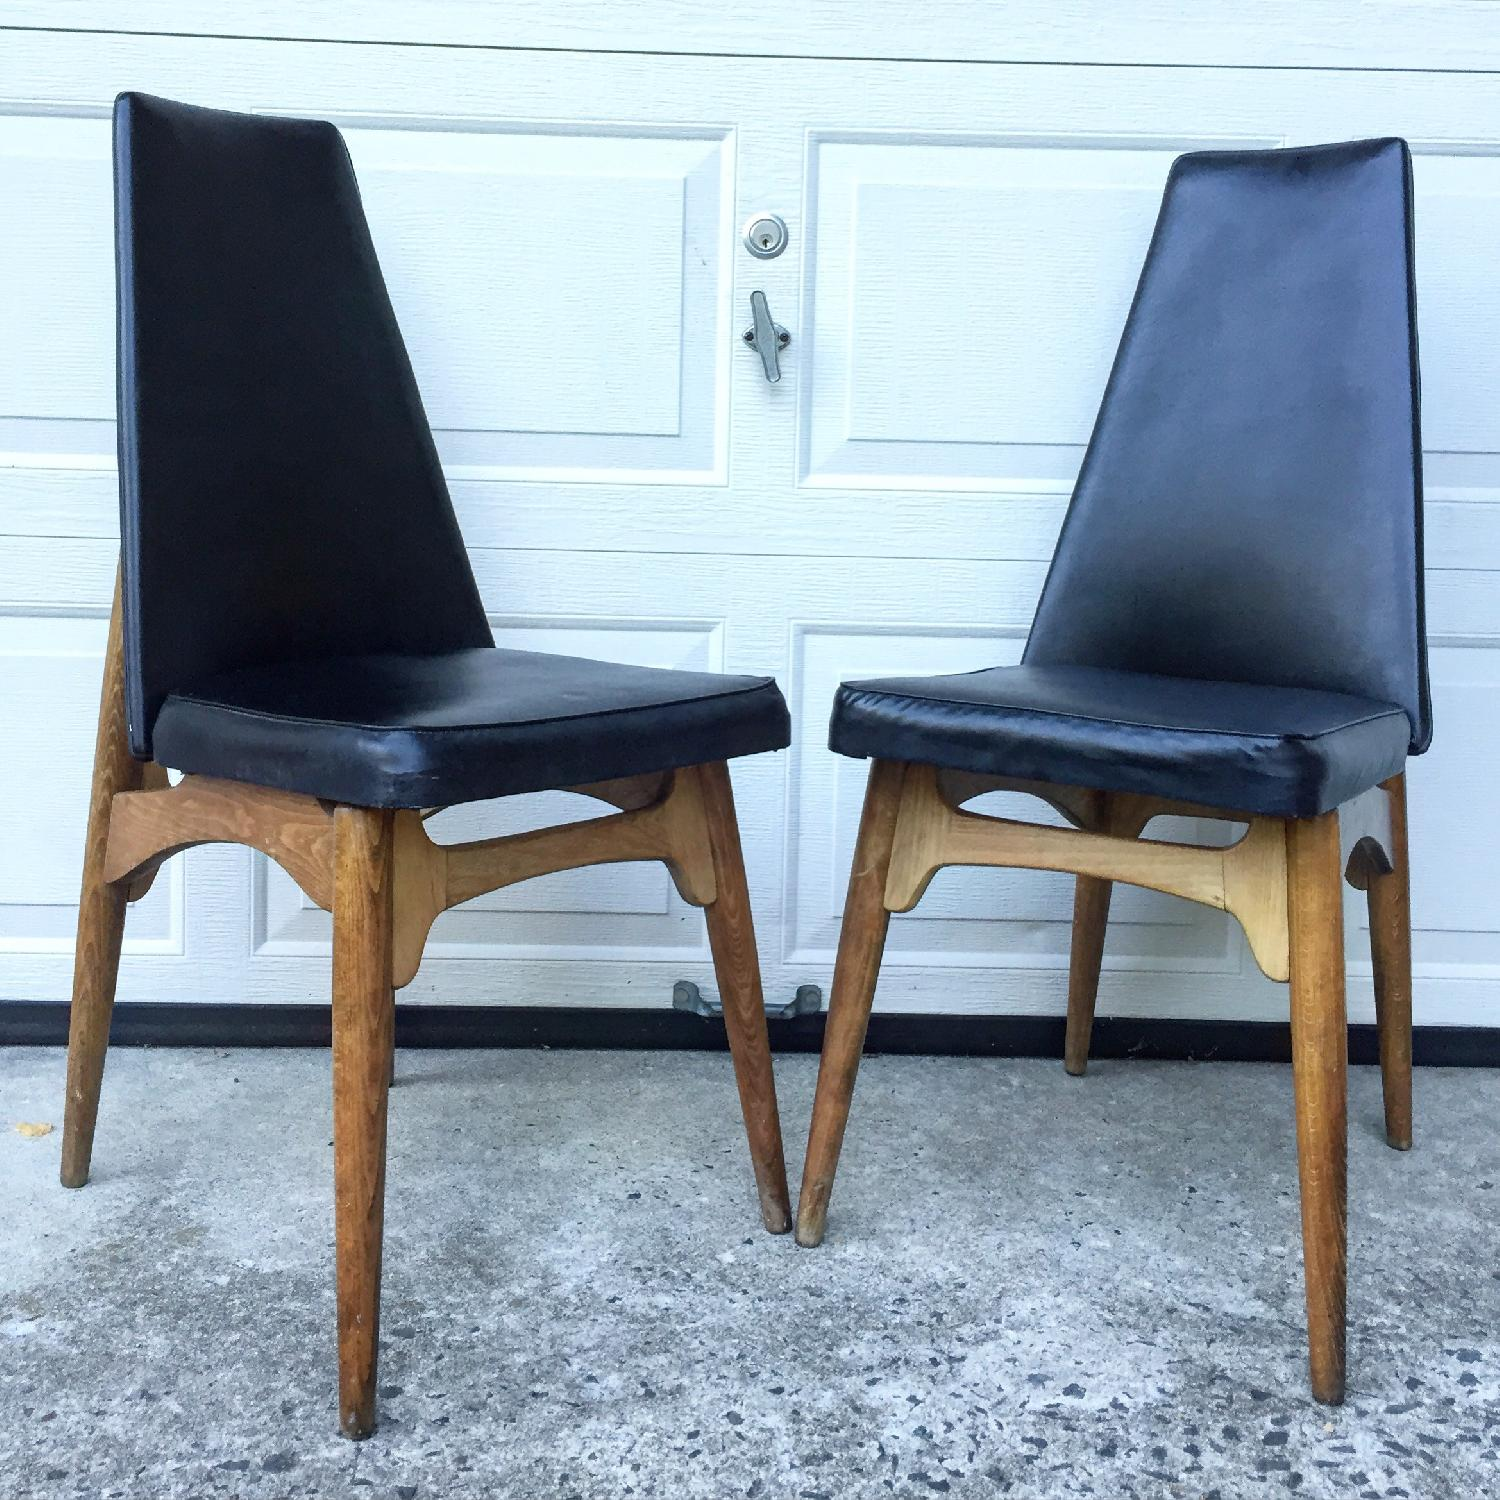 Mid Century Modern High Back Chairs with Black Vinyl - Pair